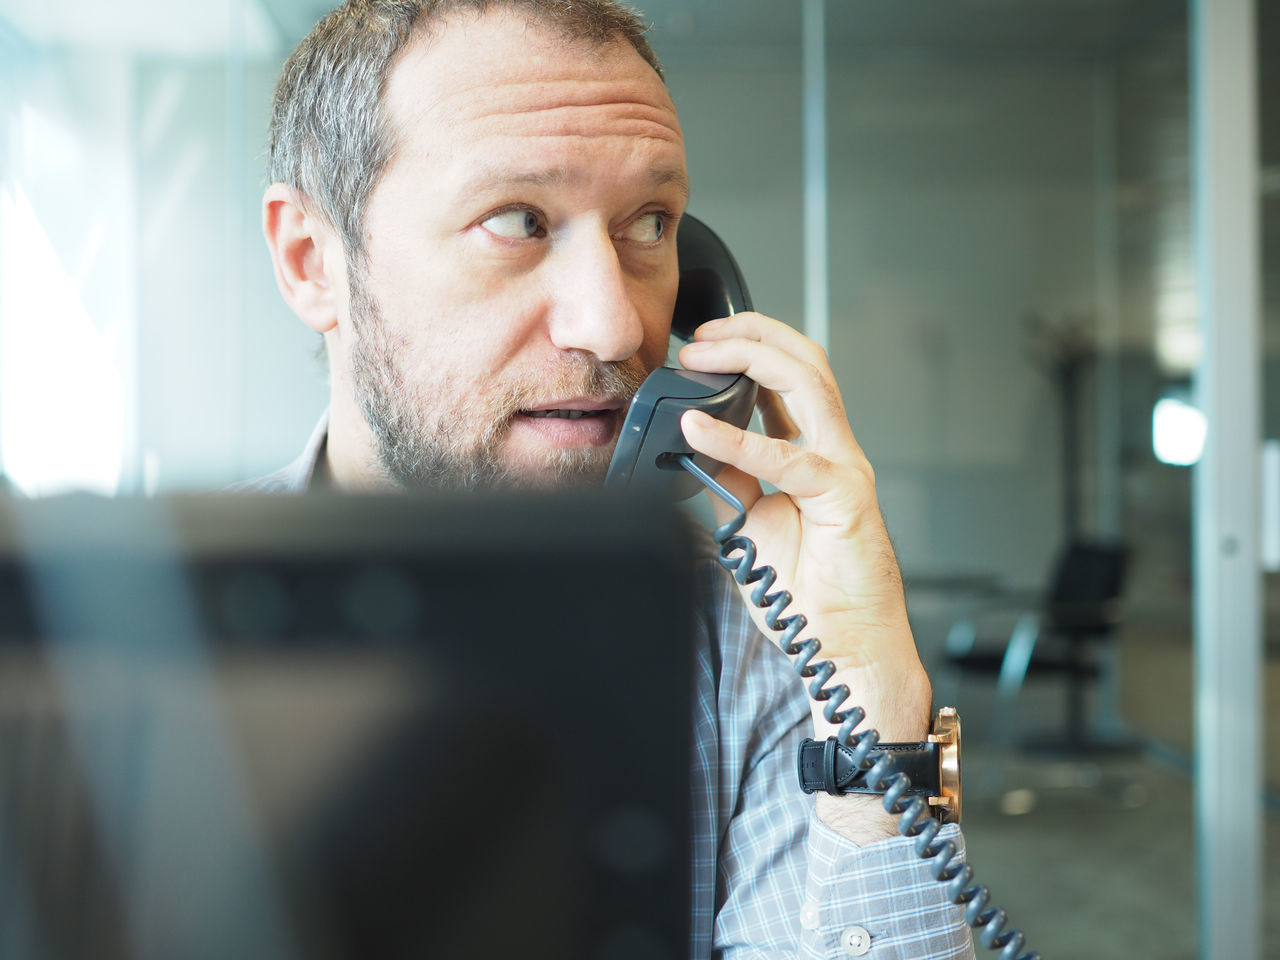 Business Business Finance And Industry Business Person Businessman Call Communication Man Man Head Monitor Negotiate Office Office Office View Officeman One Person Phone Shirt Shirt Man Telephone Telephone Cable Telephone Line Work Work Man Working Employed